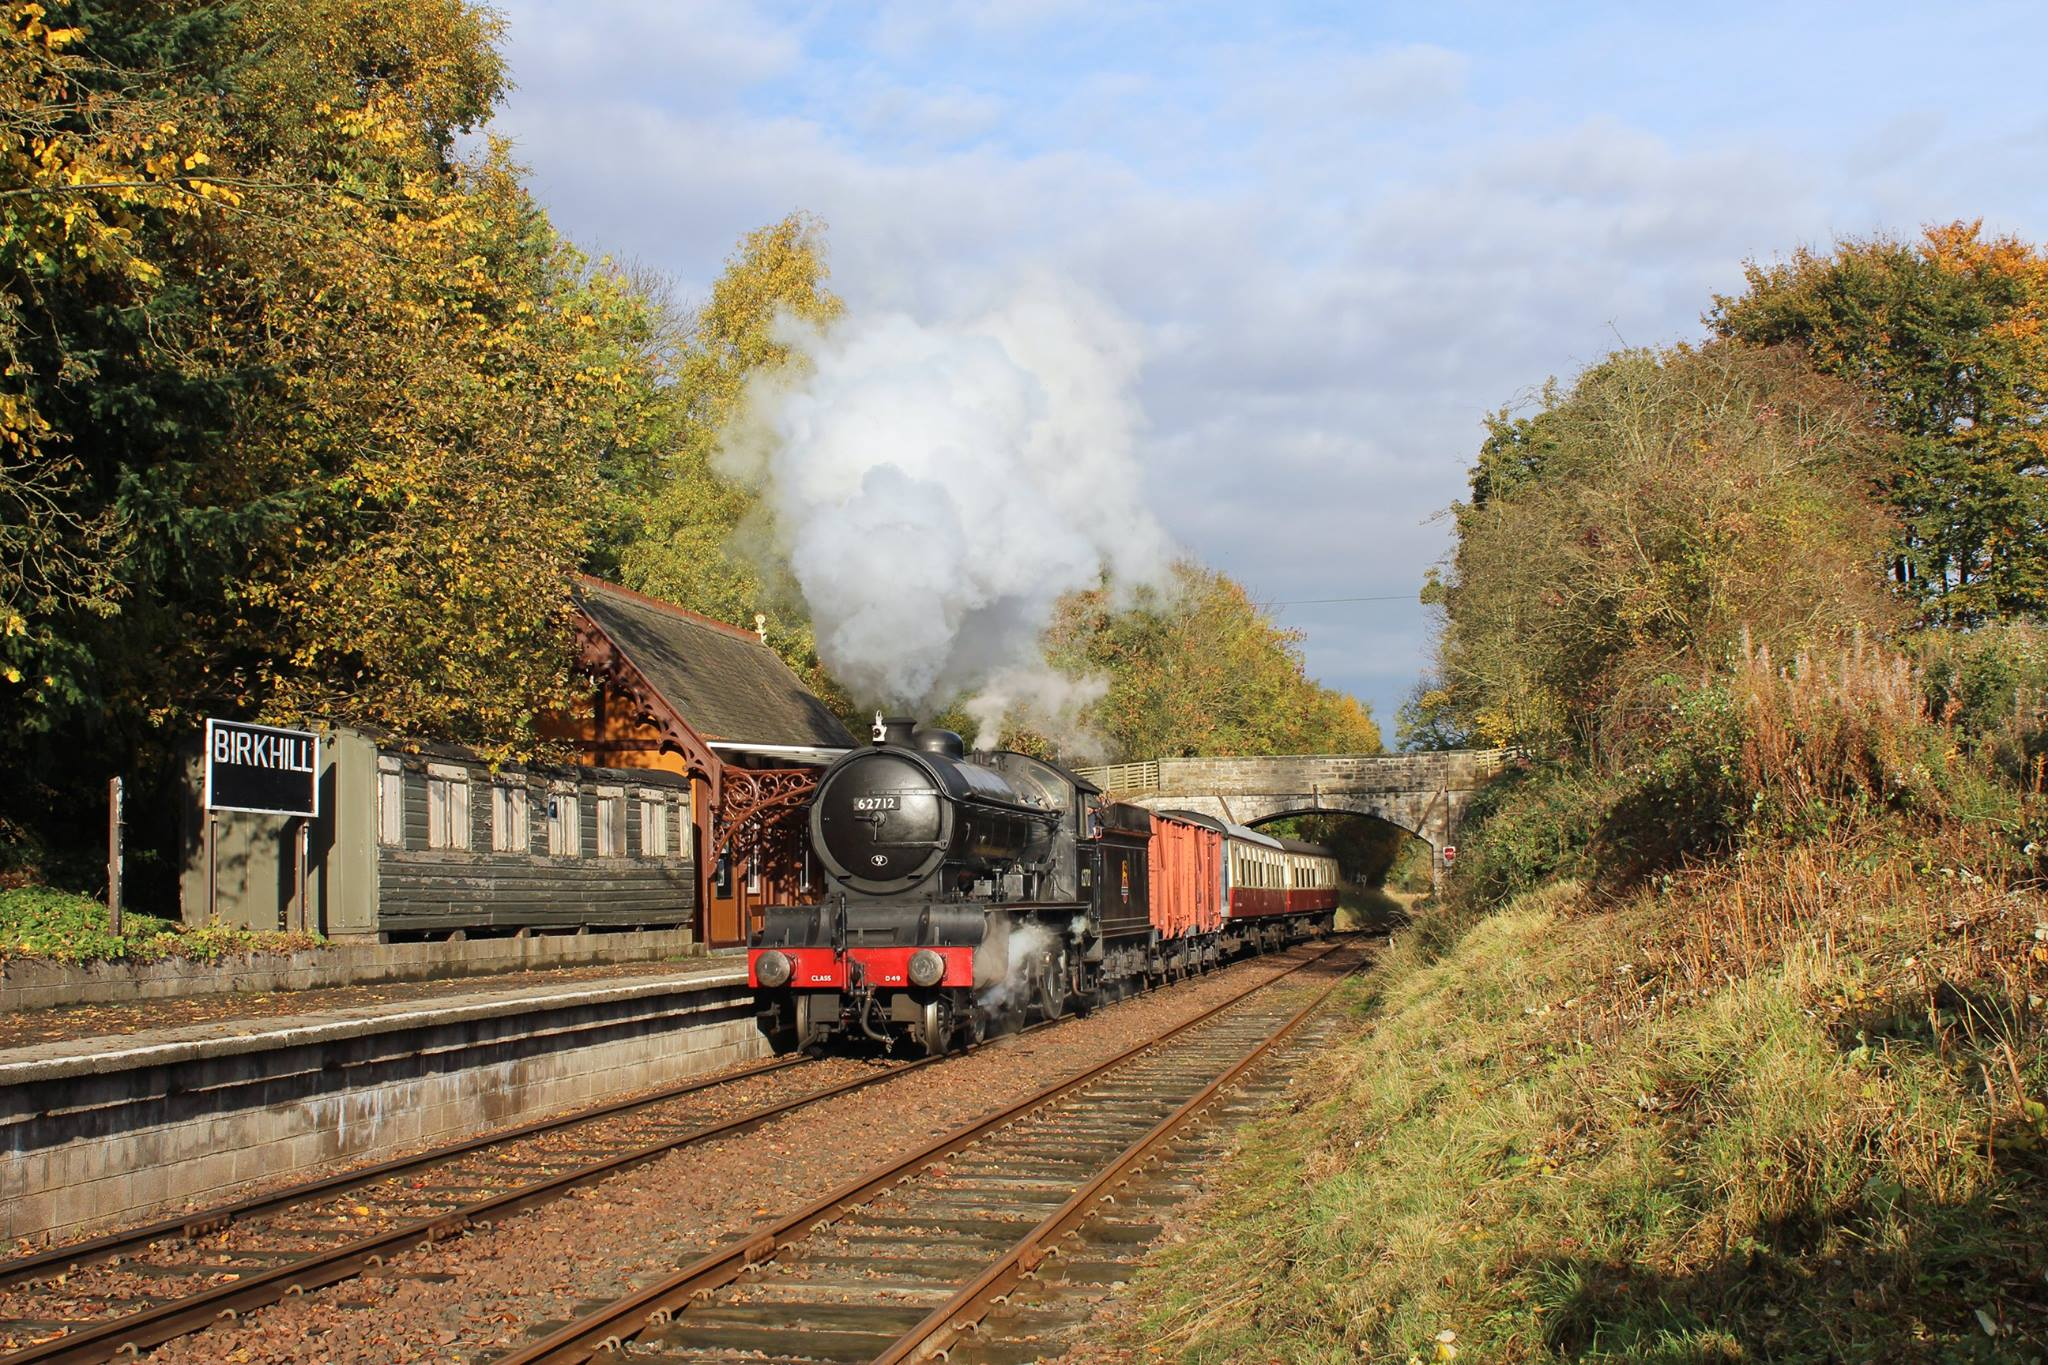 (Andrew Fowler) 62712 at Birkhill Station with a photo charter.